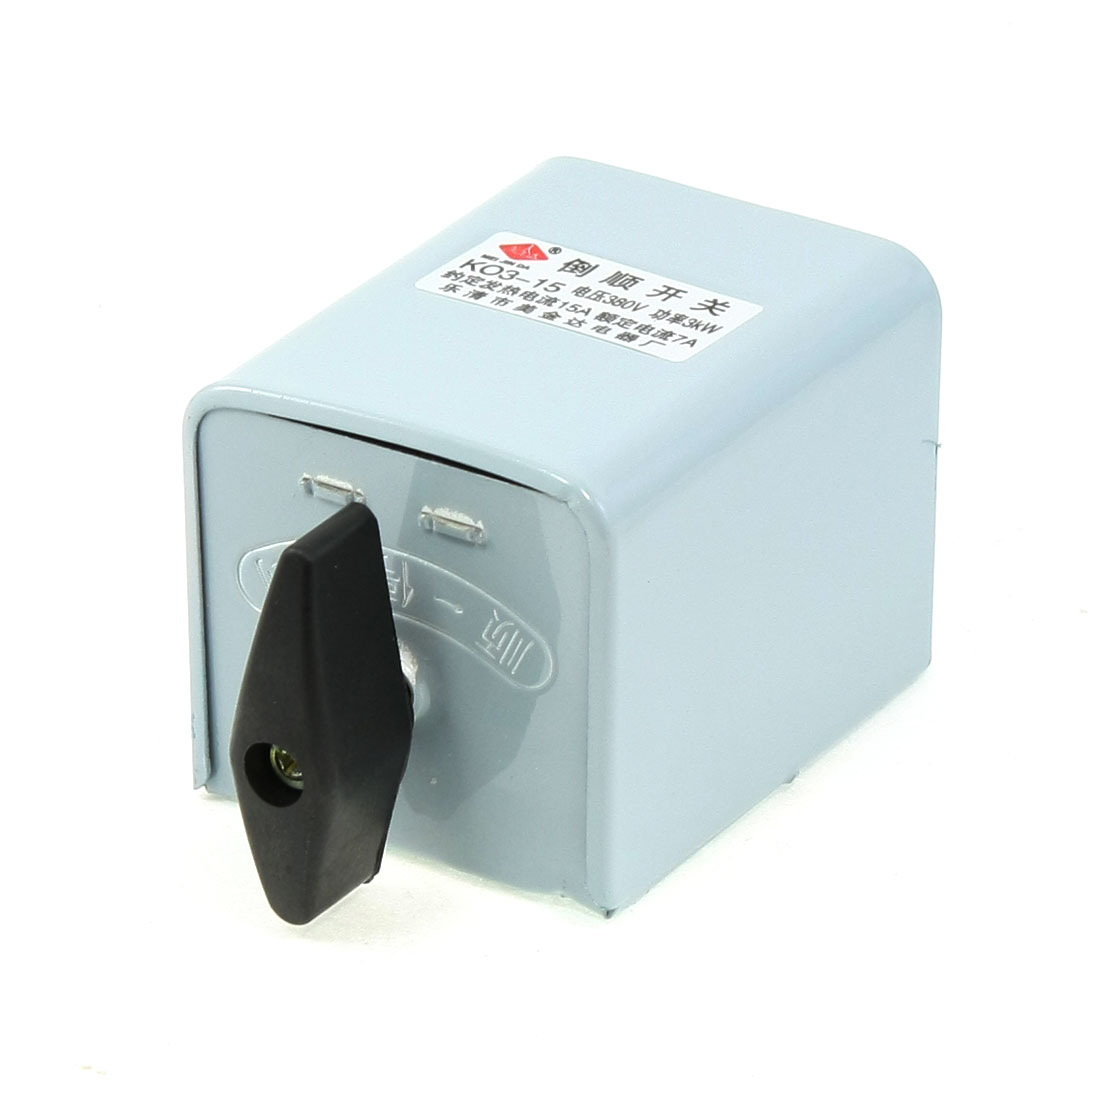 380V 3KW Rotary Motor Control Forward Reversing Changeover Switch KO3-15